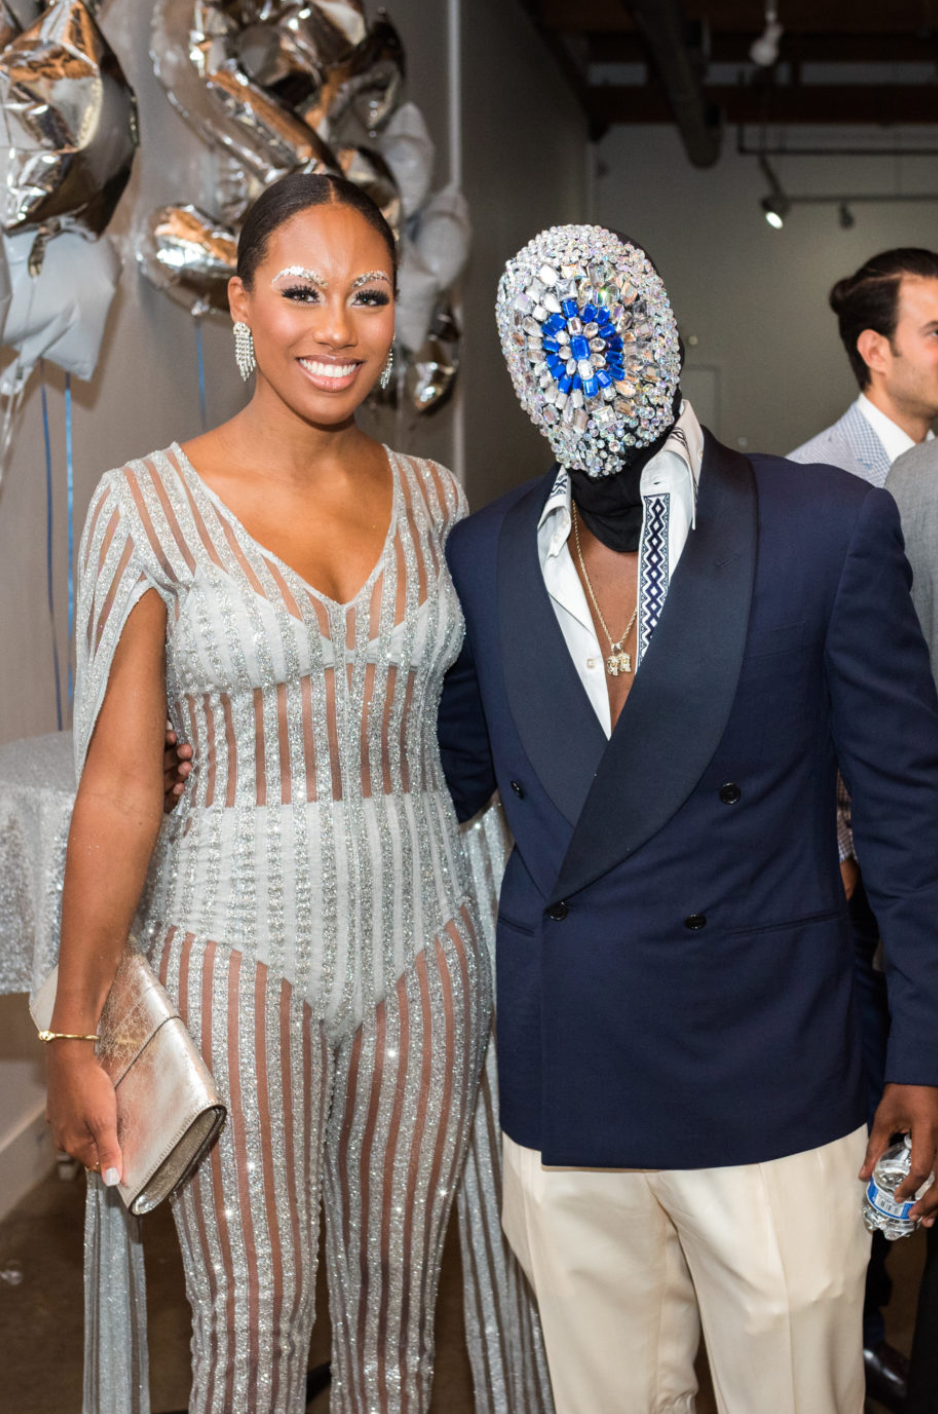 This Met Gala themed was by far one of our favorite private parties hosted at Ronin. Houston blogger Kara pulled out all the stops for this beautiful event. See more here,  http://www.commonpolished.com/my-met-gala-birthday/